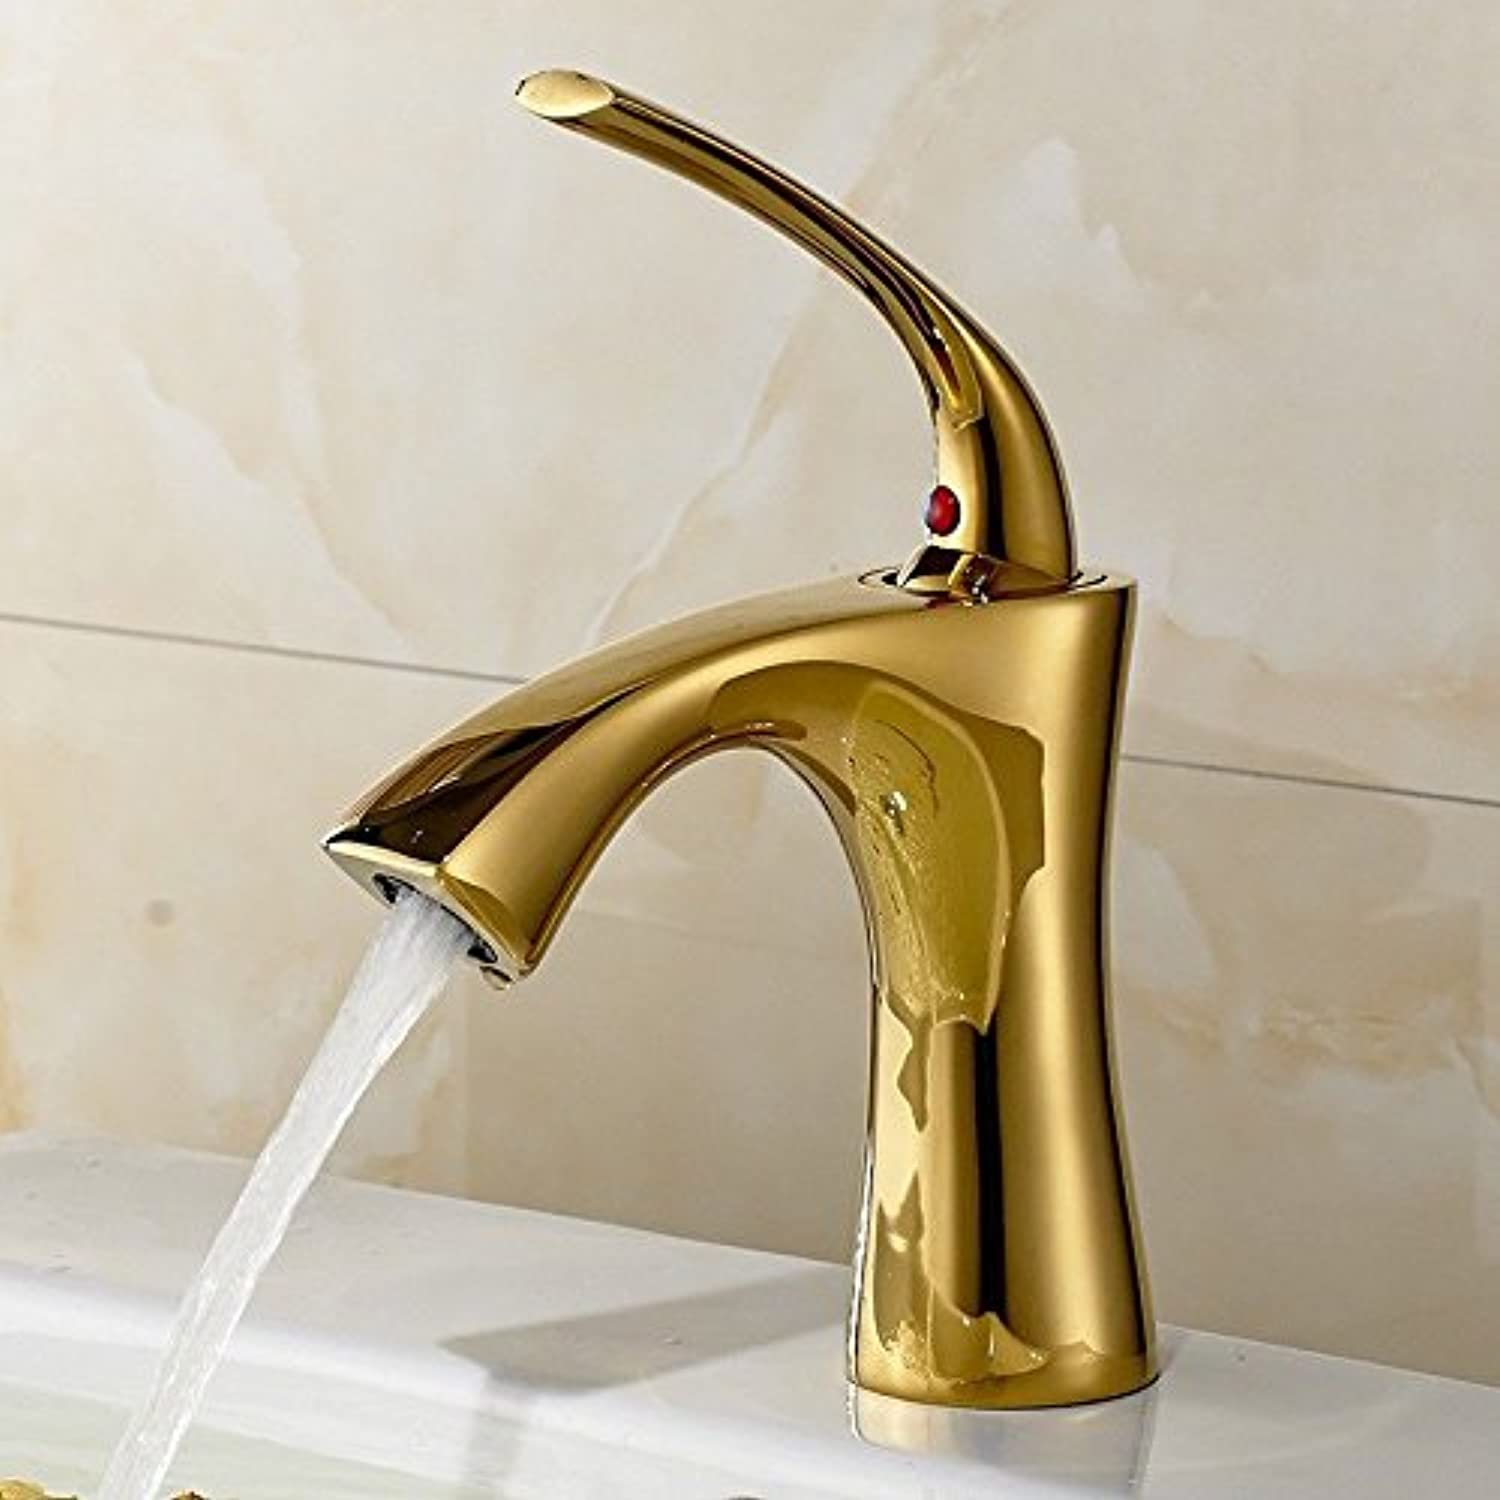 ETERNAL QUALITY Bathroom Sink Basin Tap Brass Mixer Tap Tap Tap Washroom Mixer Faucet Antique gold plated brass single handle one hole ceramic valve cold water bathroom basin mix e6c03a